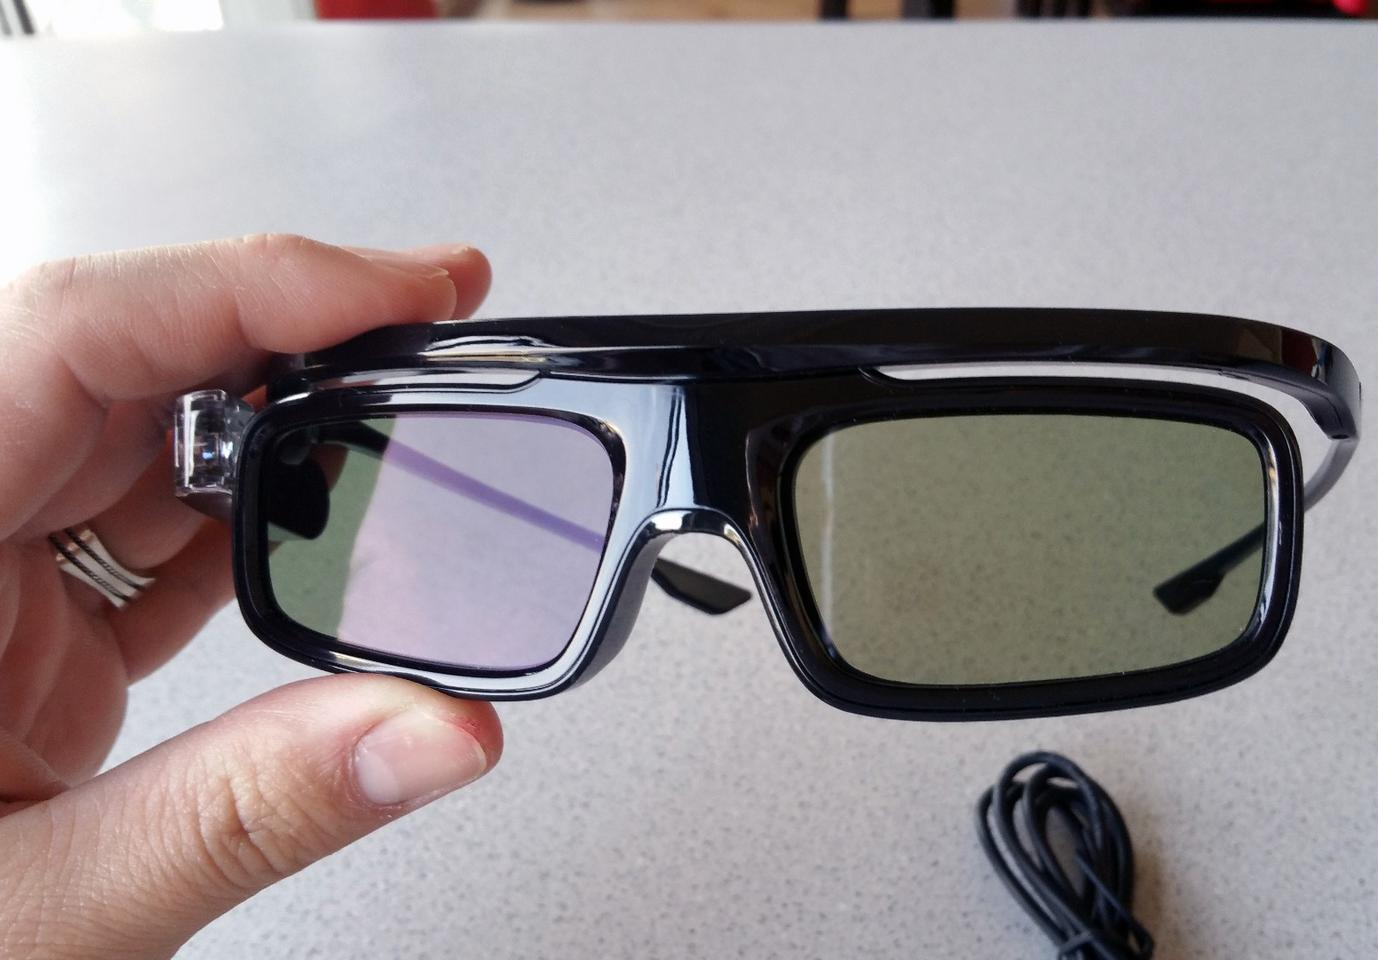 JmGO offers active shutter DLP-Link 3D glasses to go with the View projector